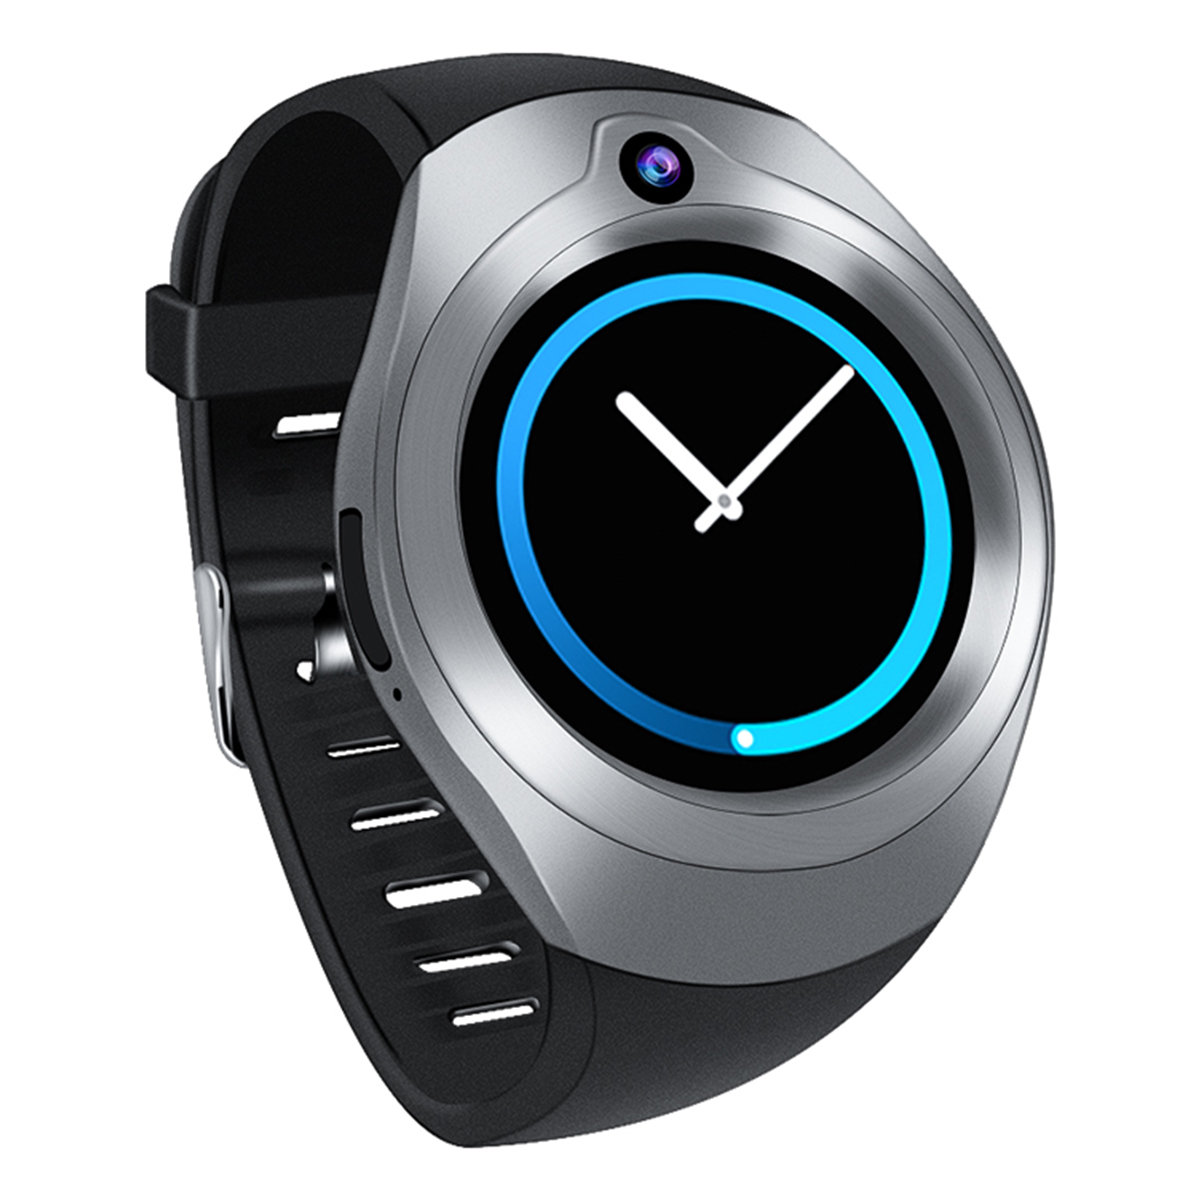 S216 Smart Watch Android 5.1 Heart Rate Camera Video Health Monitoring SmartWatch phone support 3G WIFI SIM WCDMA OS 1.3 inchS216 Smart Watch Android 5.1 Heart Rate Camera Video Health Monitoring SmartWatch phone support 3G WIFI SIM WCDMA OS 1.3 inch